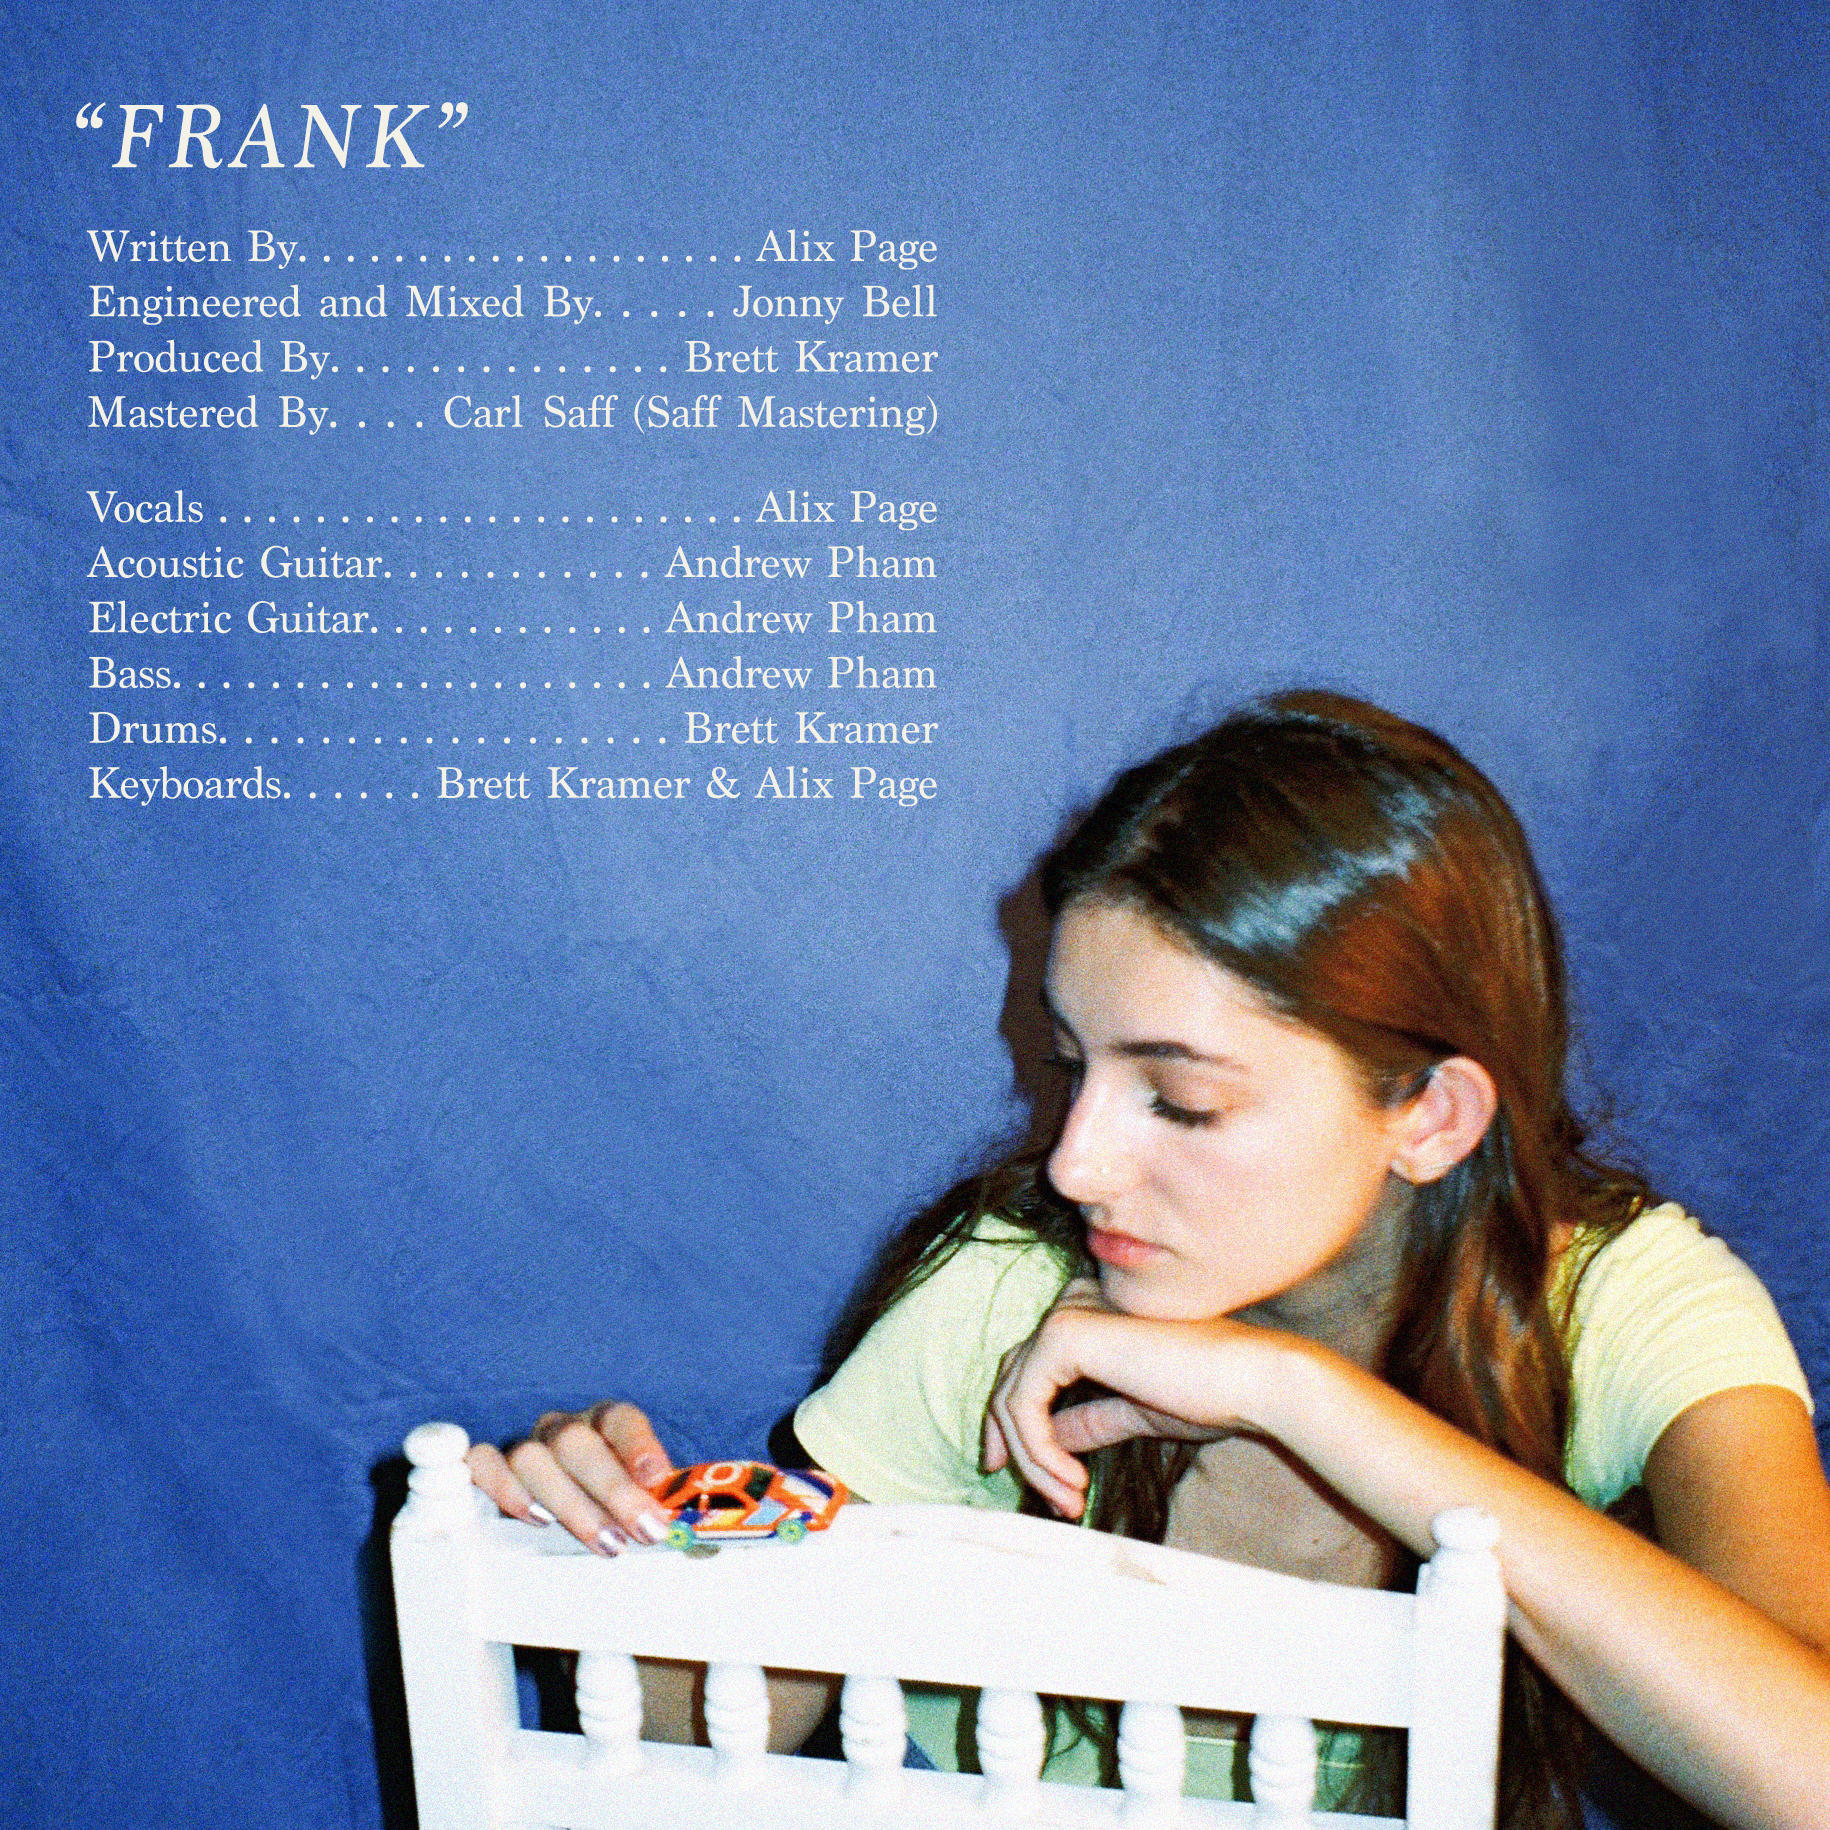 """Frank"" By Alix Page Song Credits"